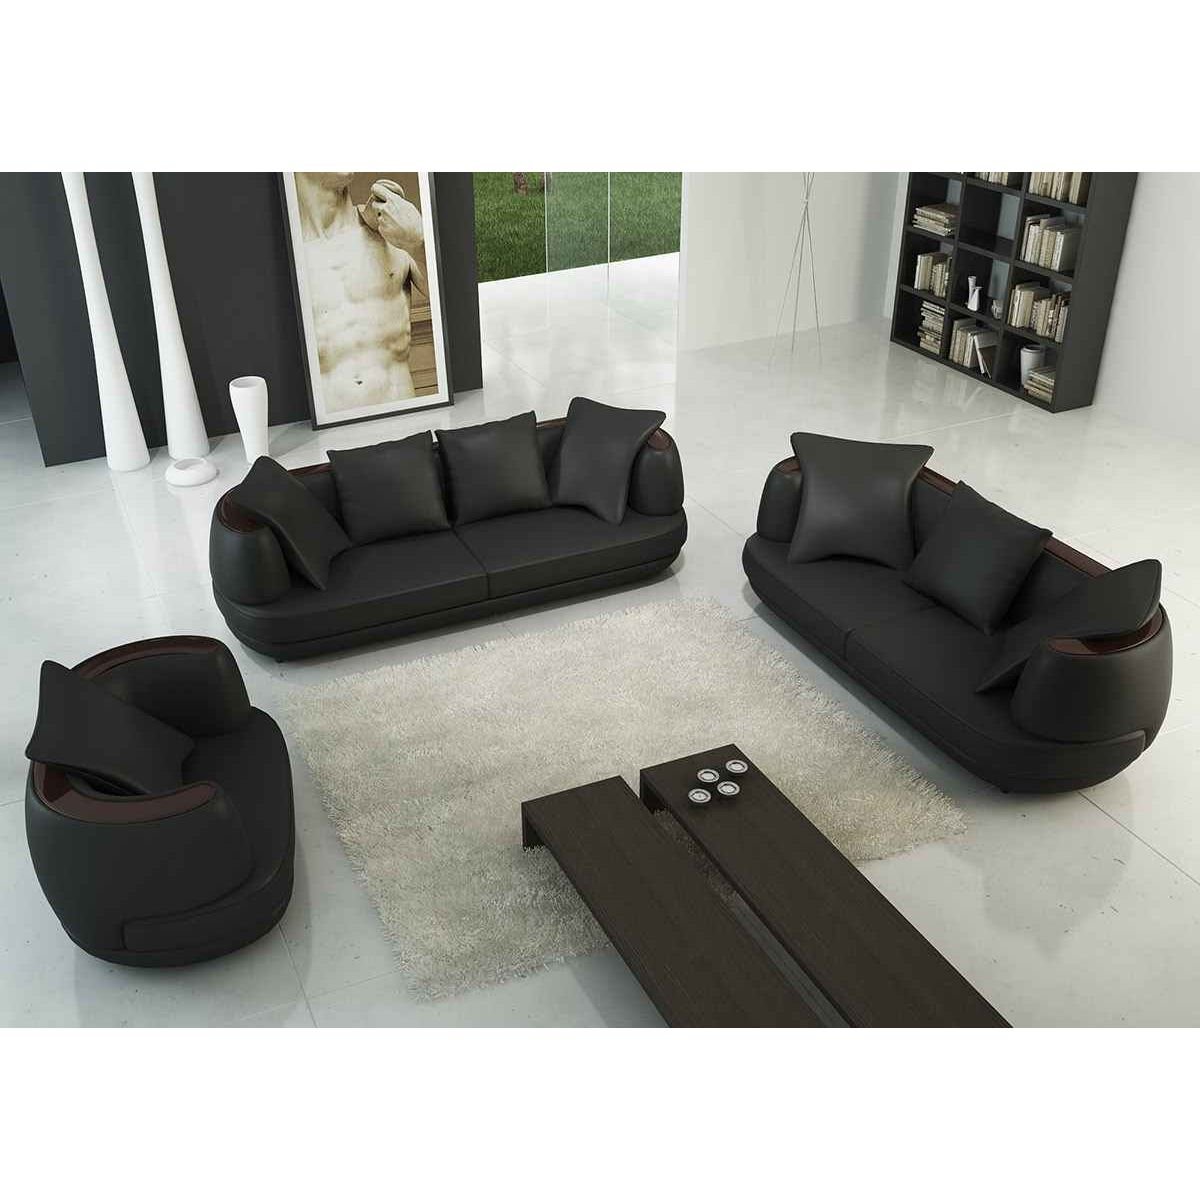 Deco in paris ensemble canape 3 2 1 places noir en cuir - Canape 3 et 2 places ...